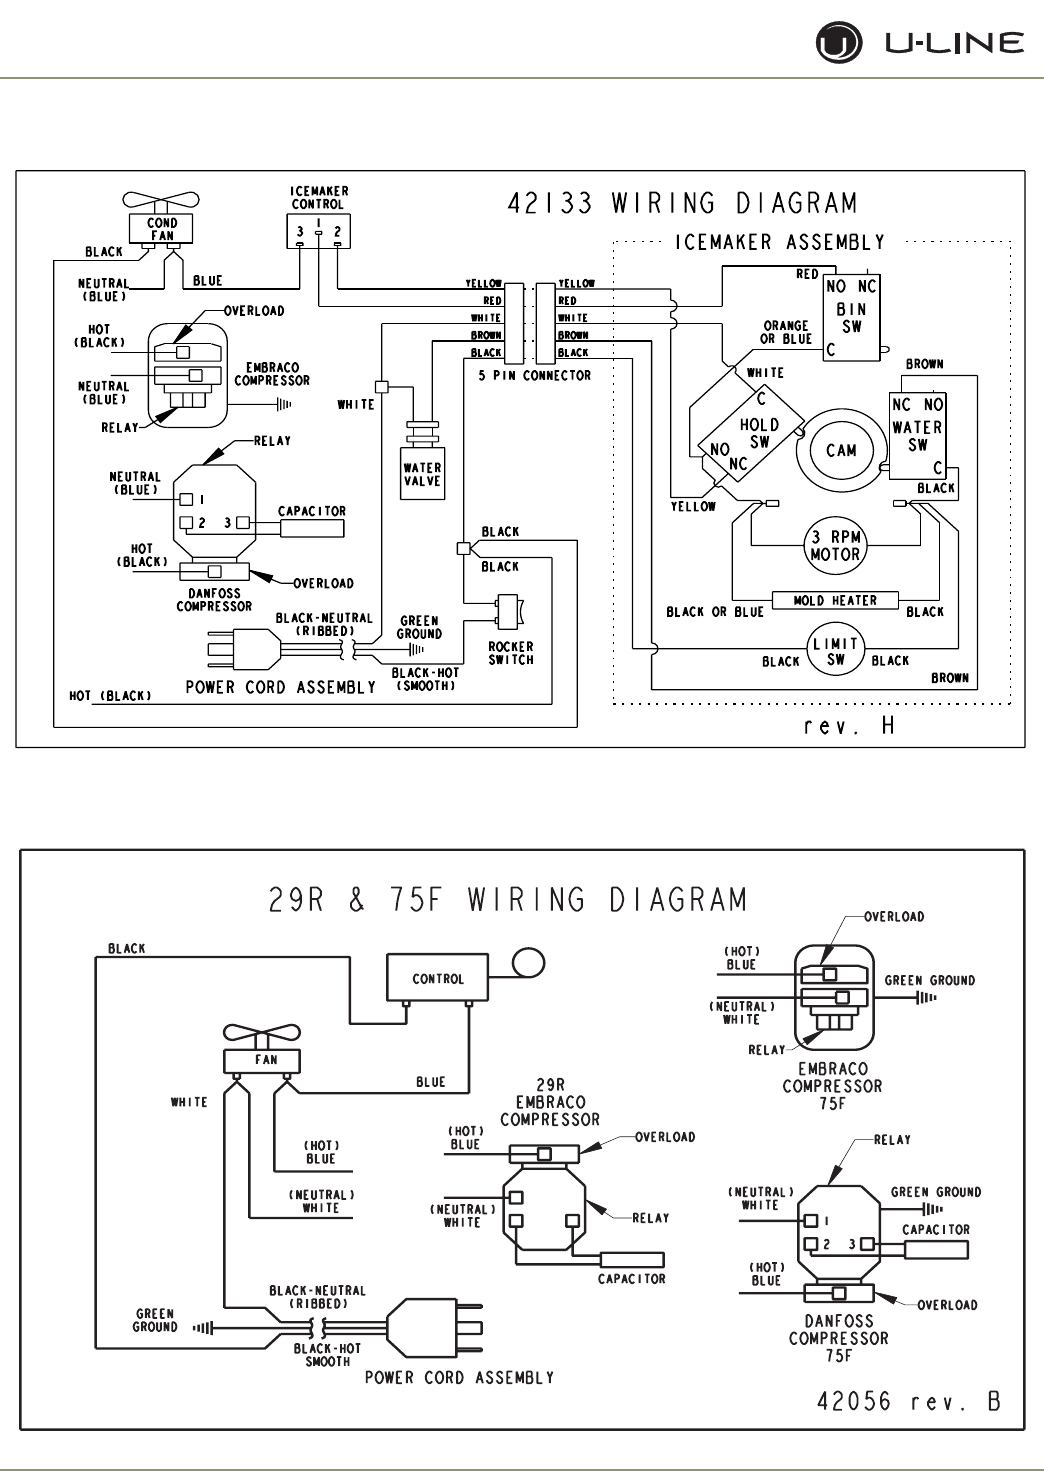 et-3f Uline B Ice Maker Wiring Diagram on